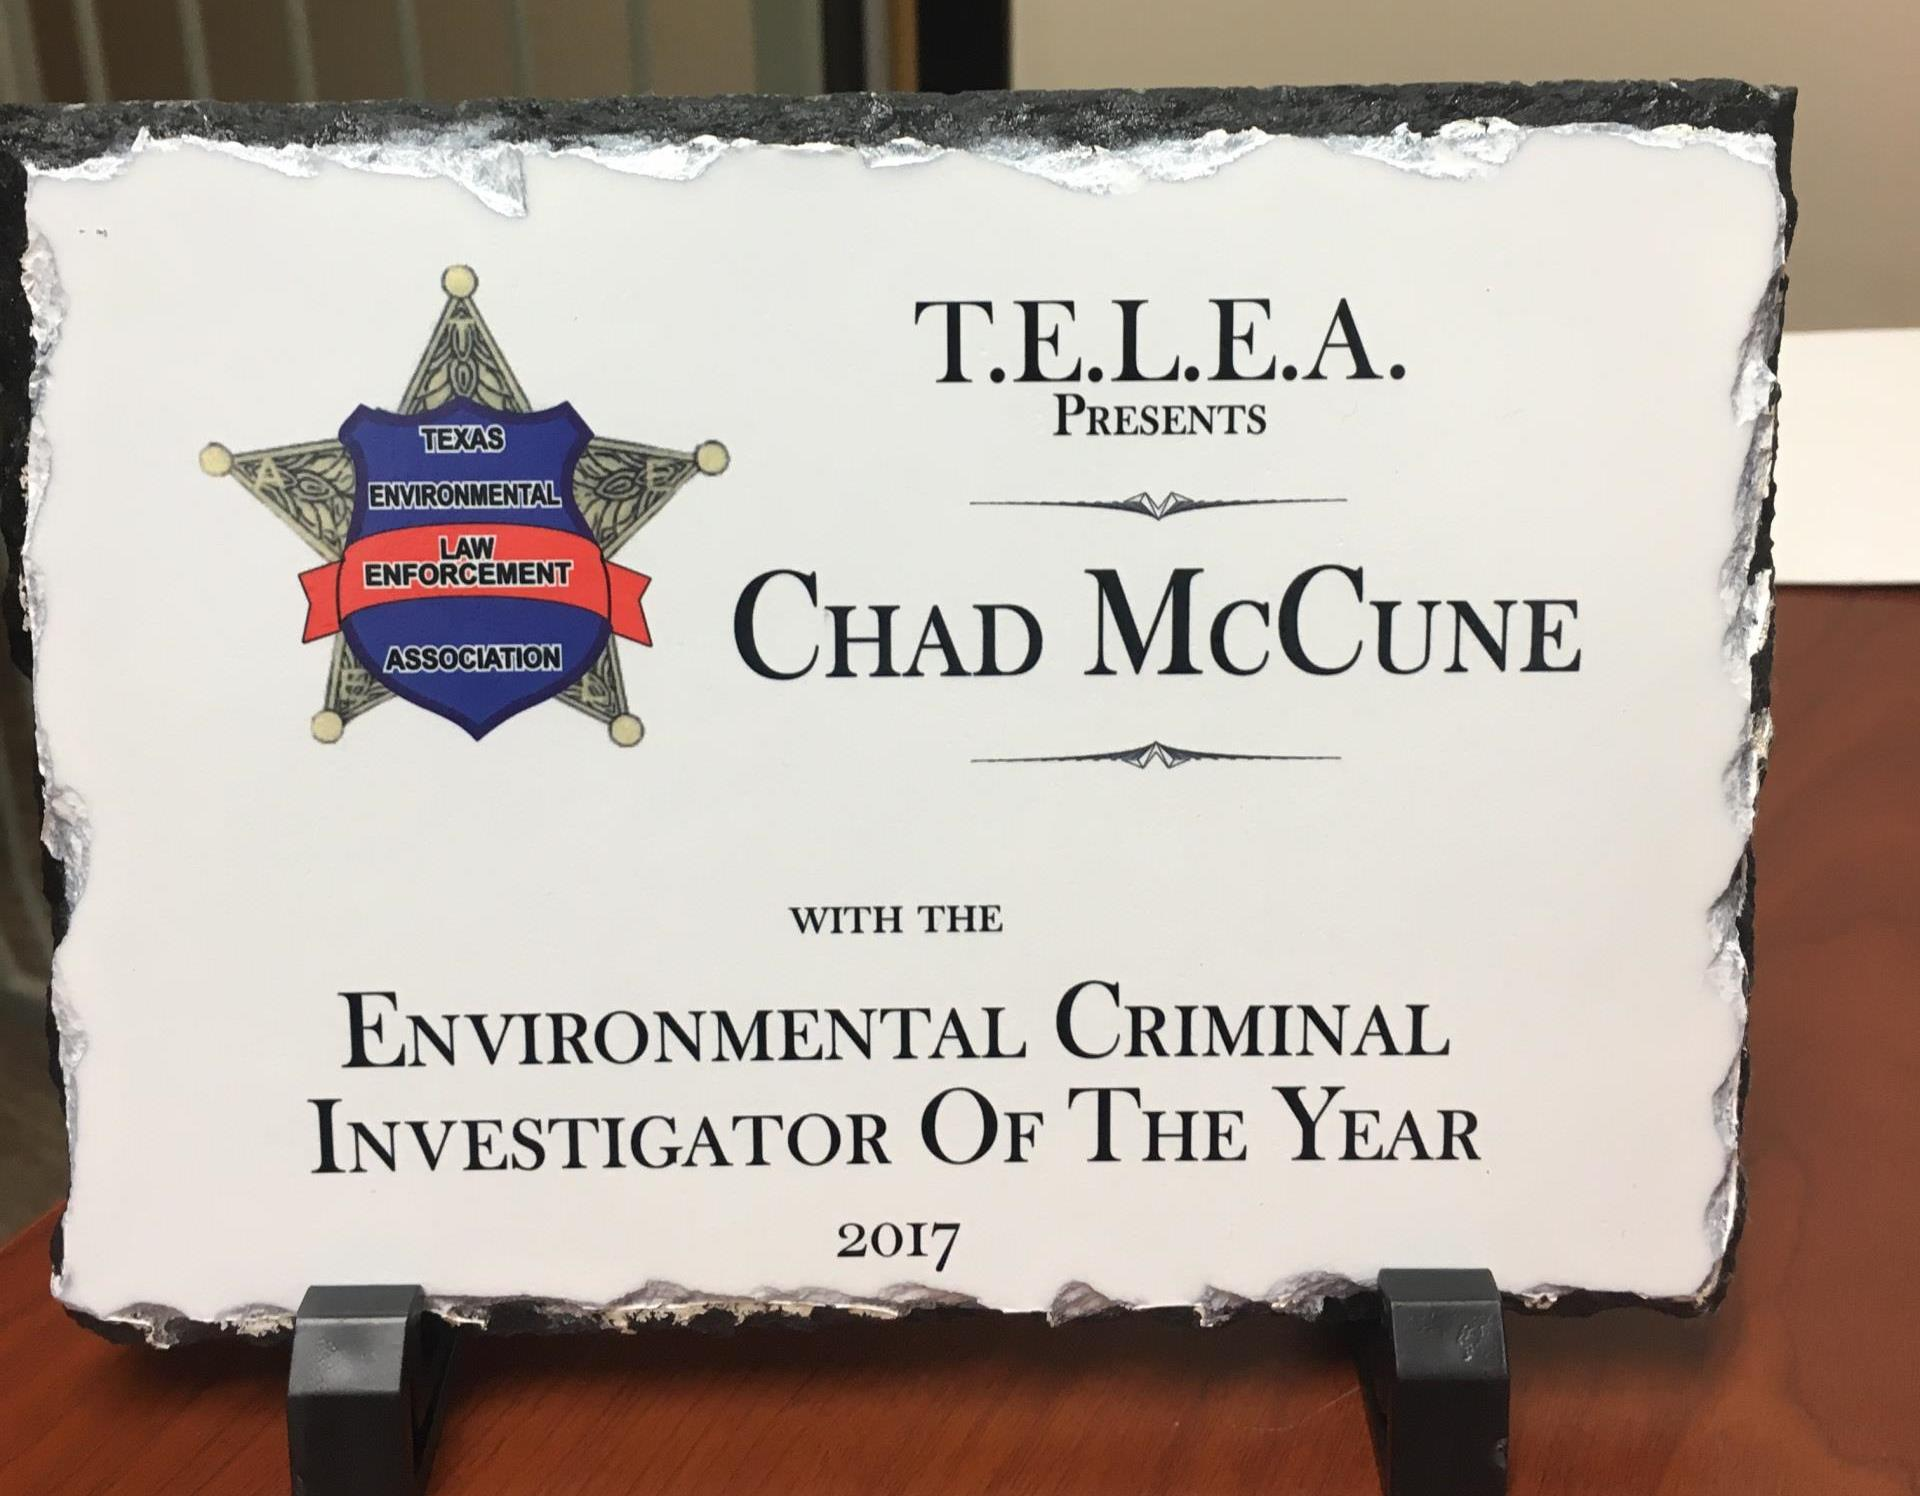 Pearland receives awards from Texas Environment Law Enforcement Association.